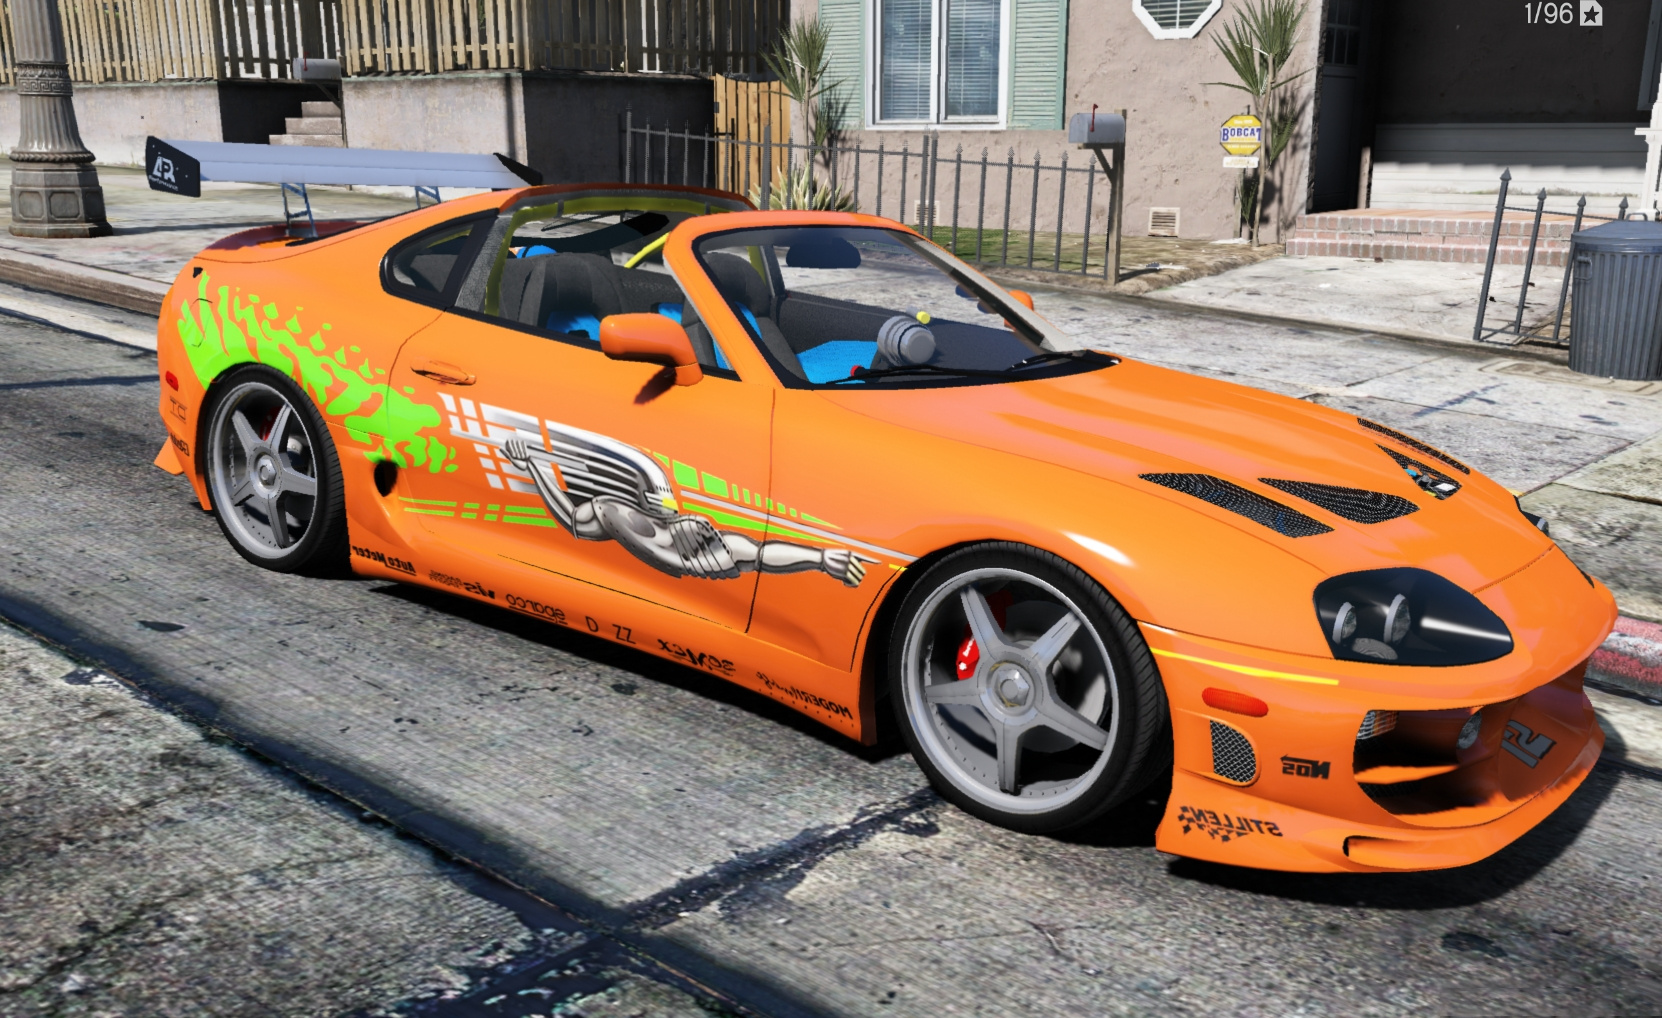 Toyota Supra From The Fast And The Furious Fast And Furious Toyota Supra Livery Gta5 Mods